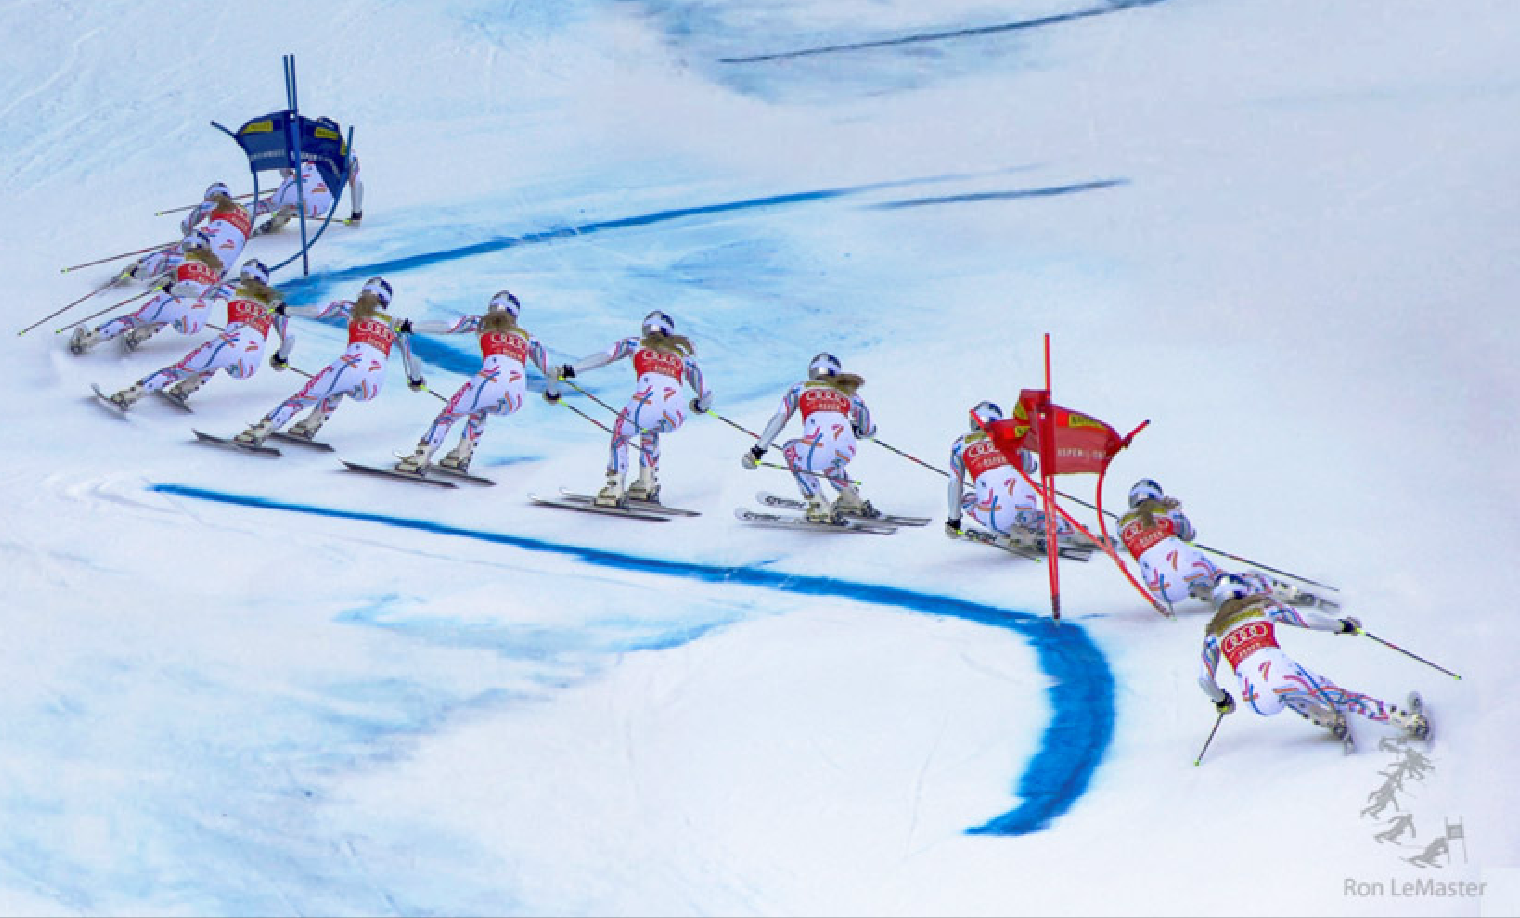 The techniques of giant slalom turn